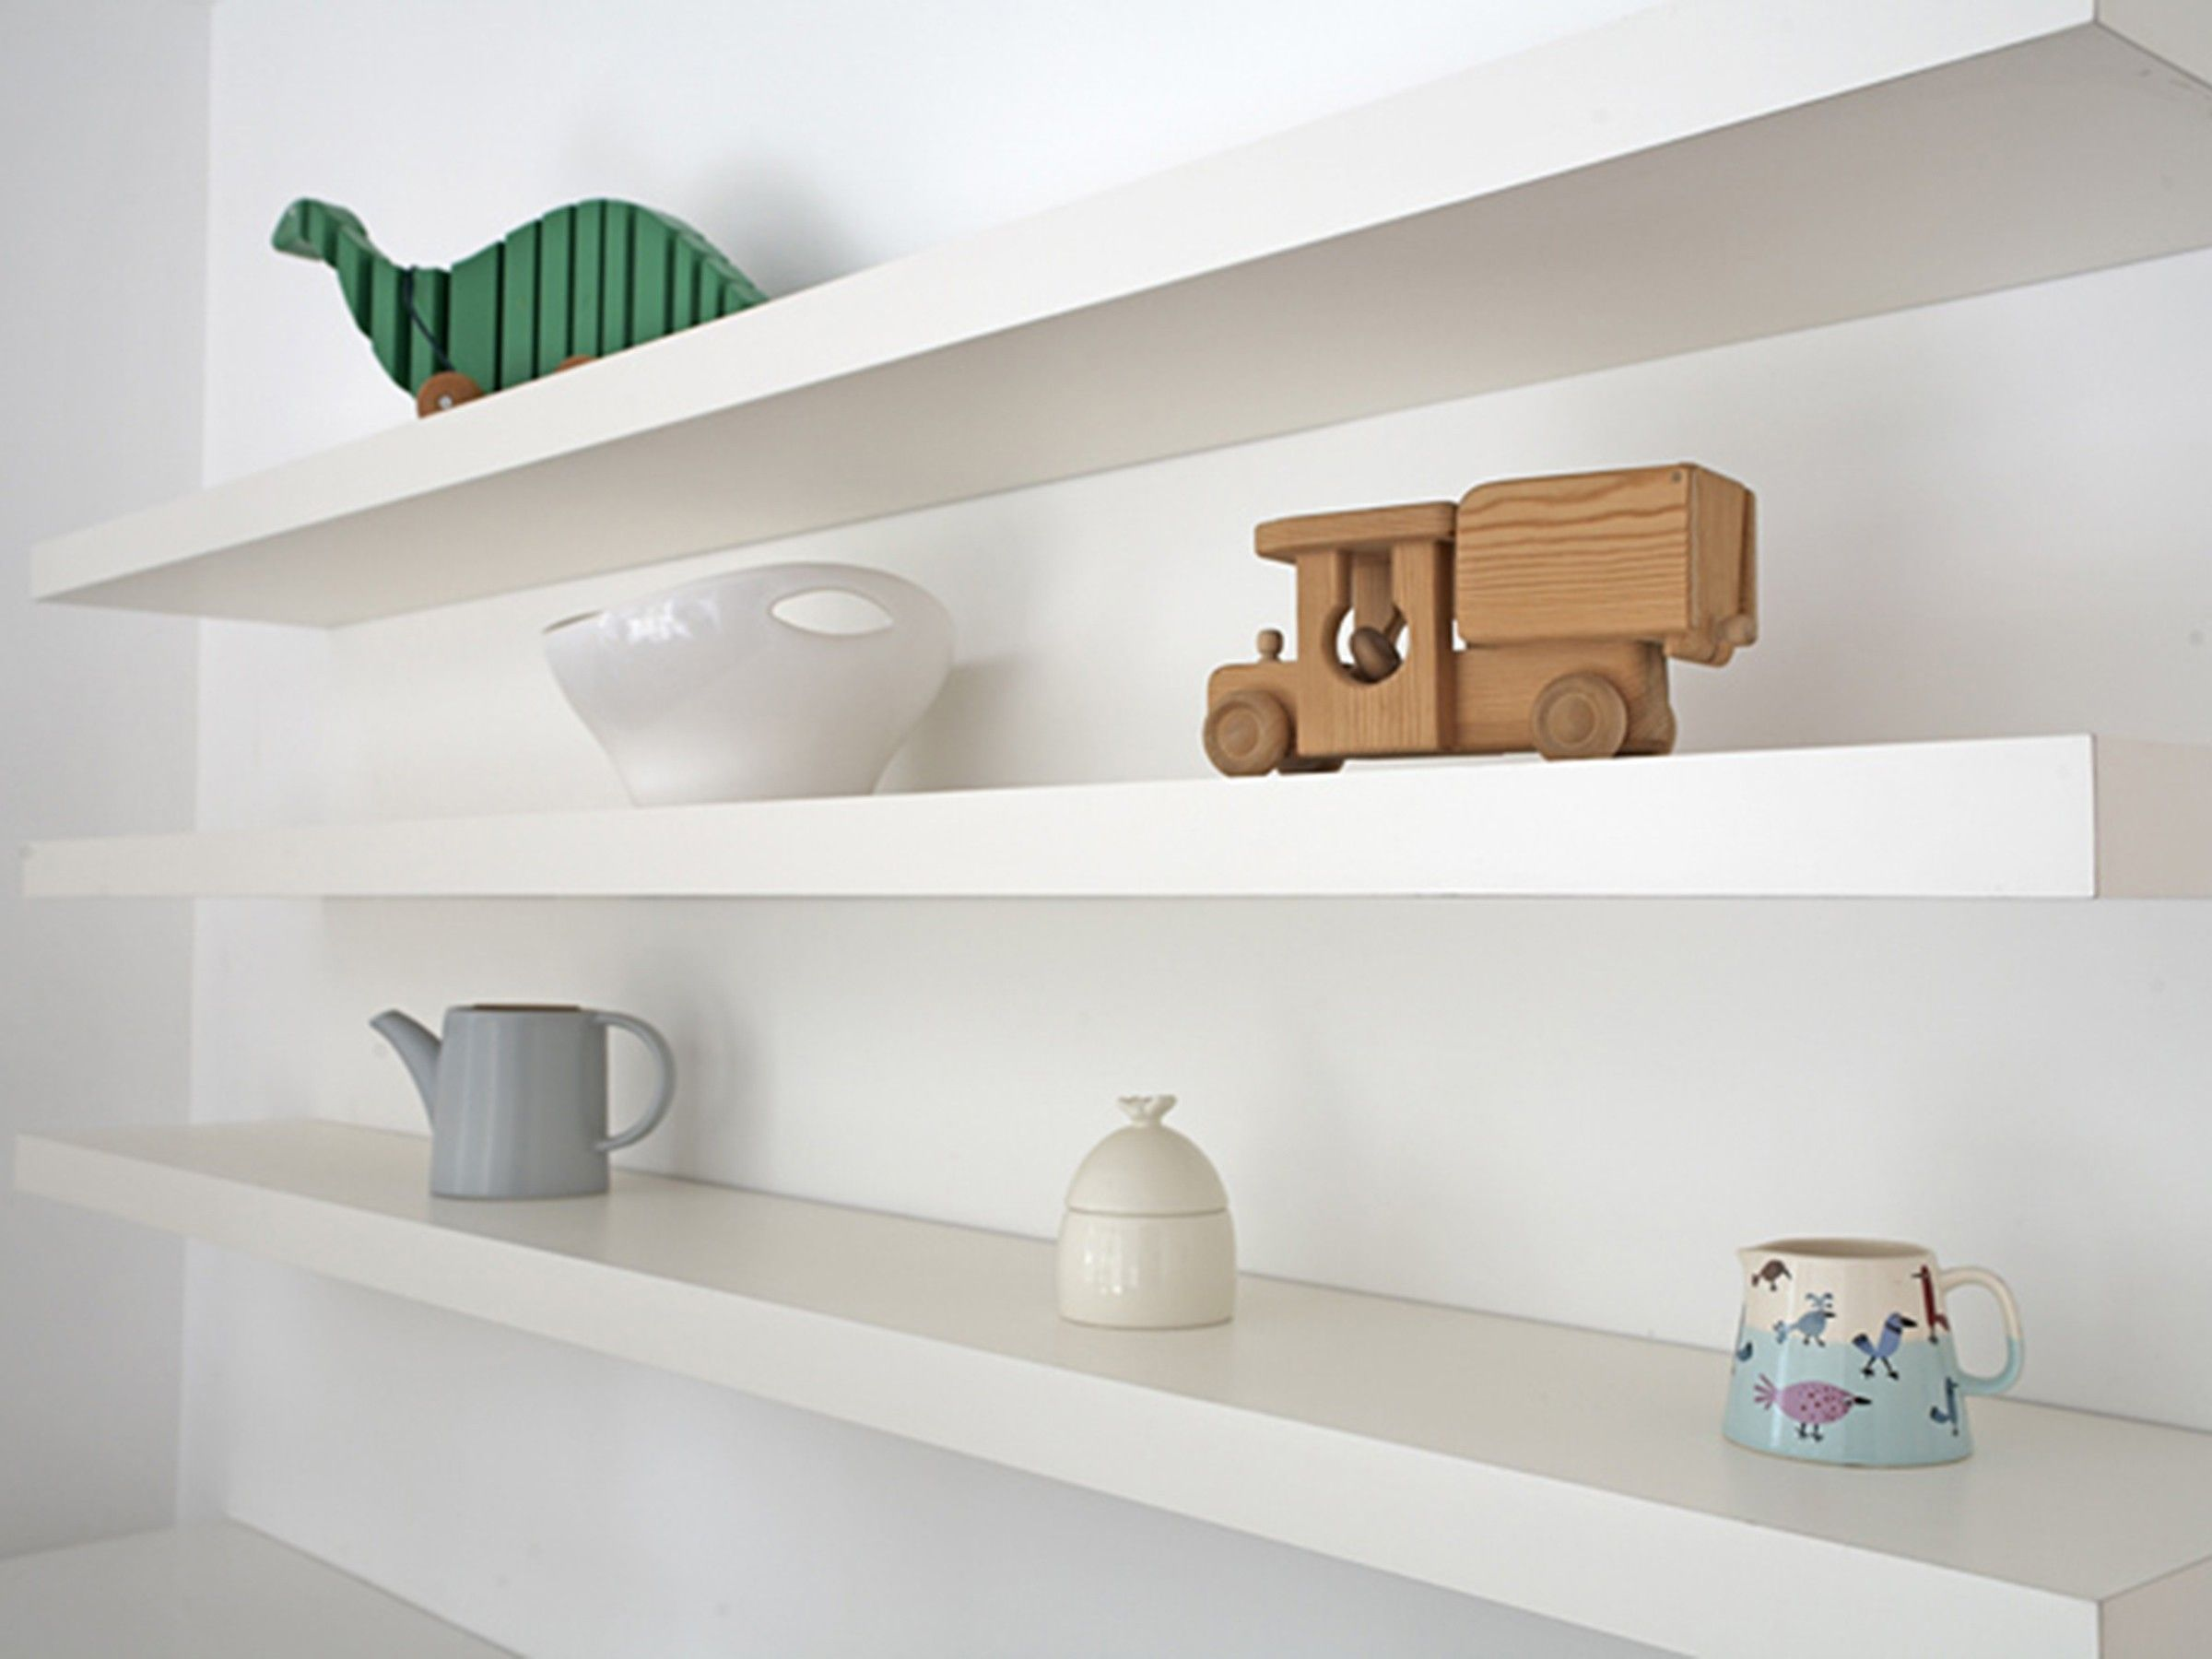 For Practical Storage And Seamless Design, You Canu0027t Beat The Mocka Floating  Shelf. With Two Colours And Sizes To Choose From, These On Trend Shelves  Make ...